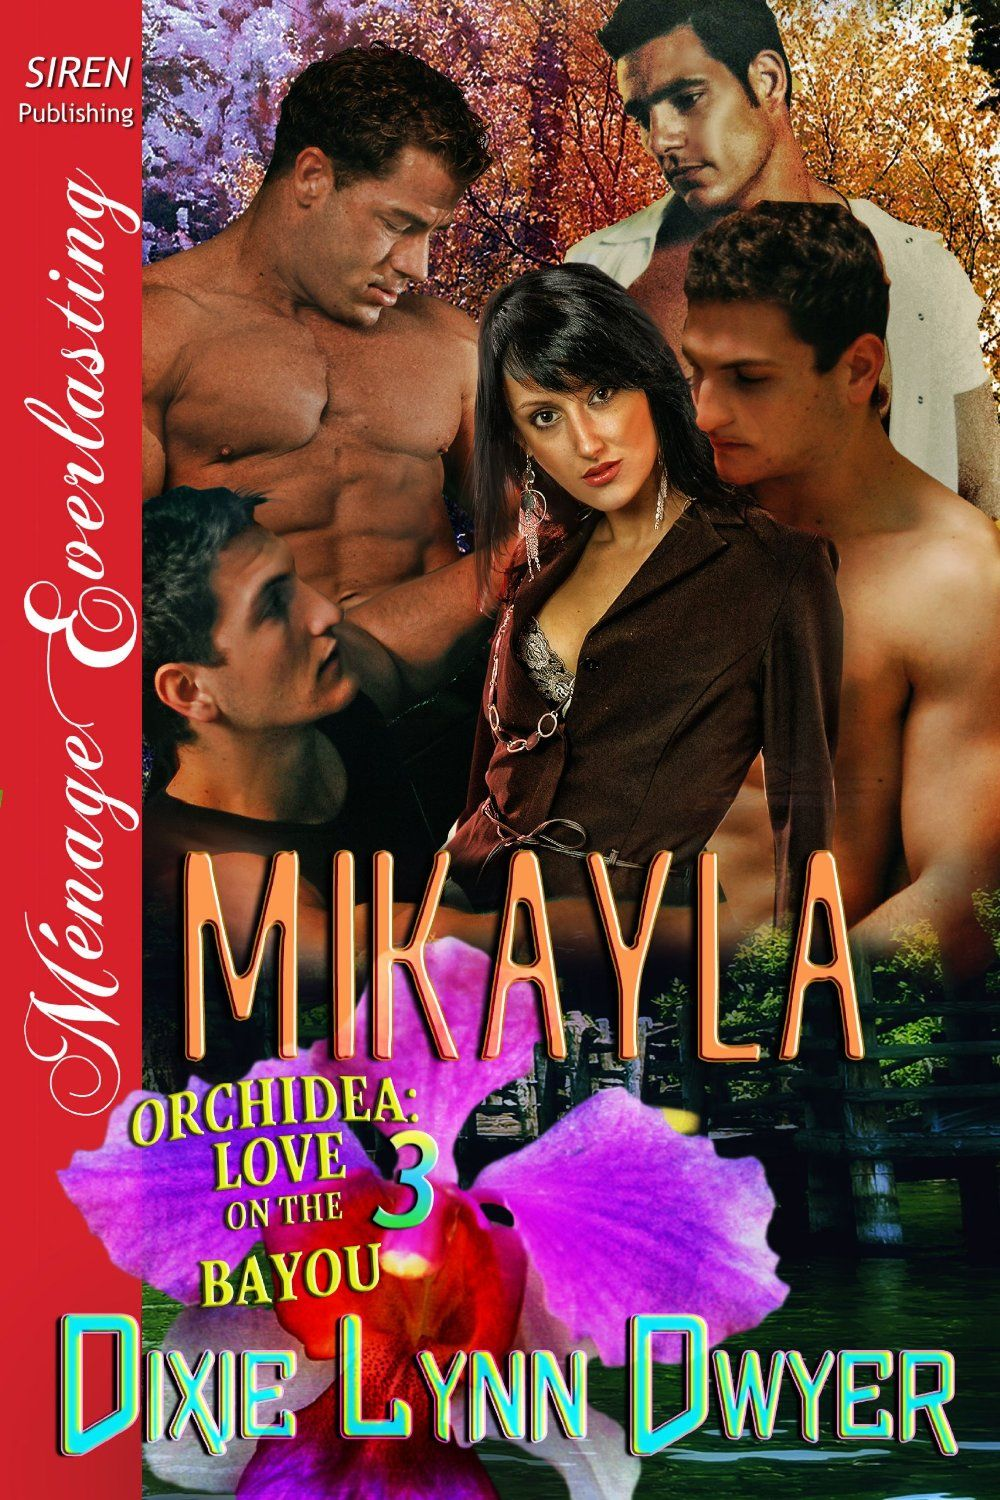 Amazon: Mikayla [orchidea: Love On The Bayou 3] (siren